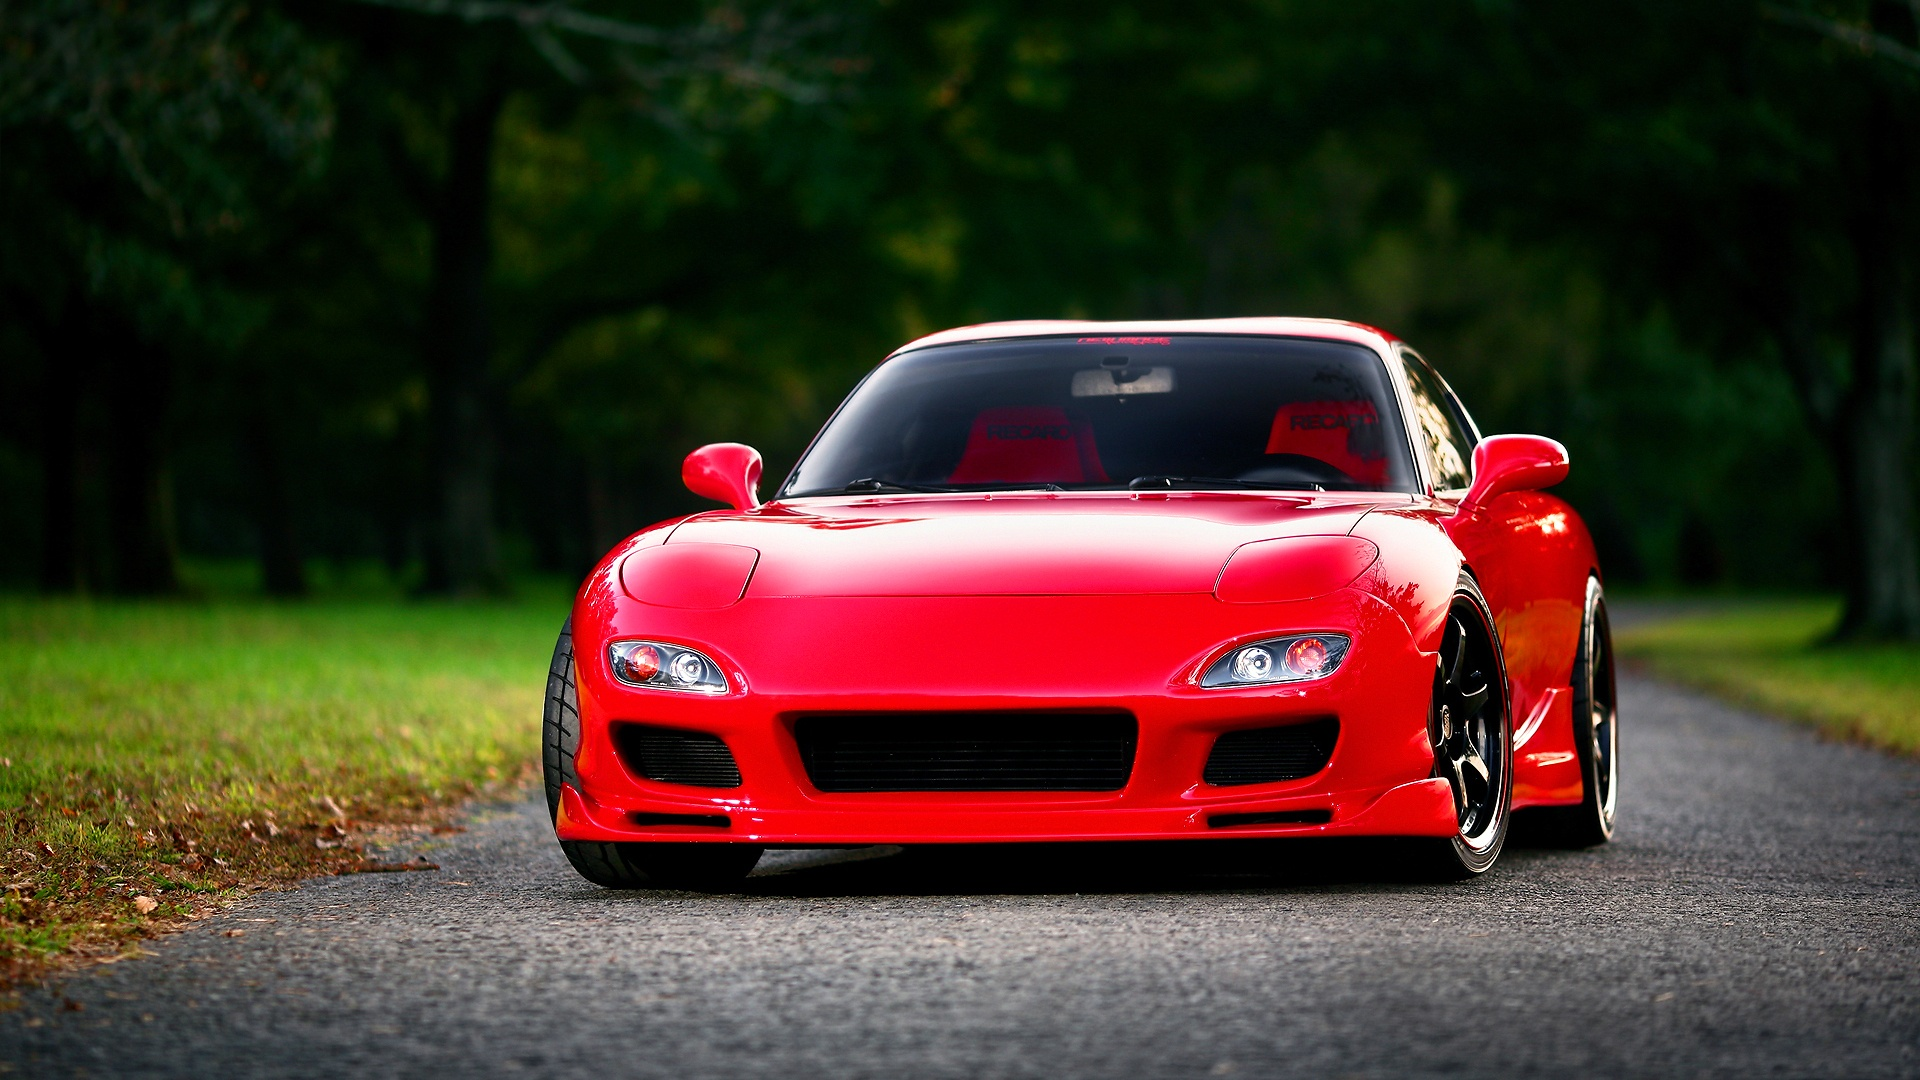 Attractive Mazda Rx7 Wallpaper 42389